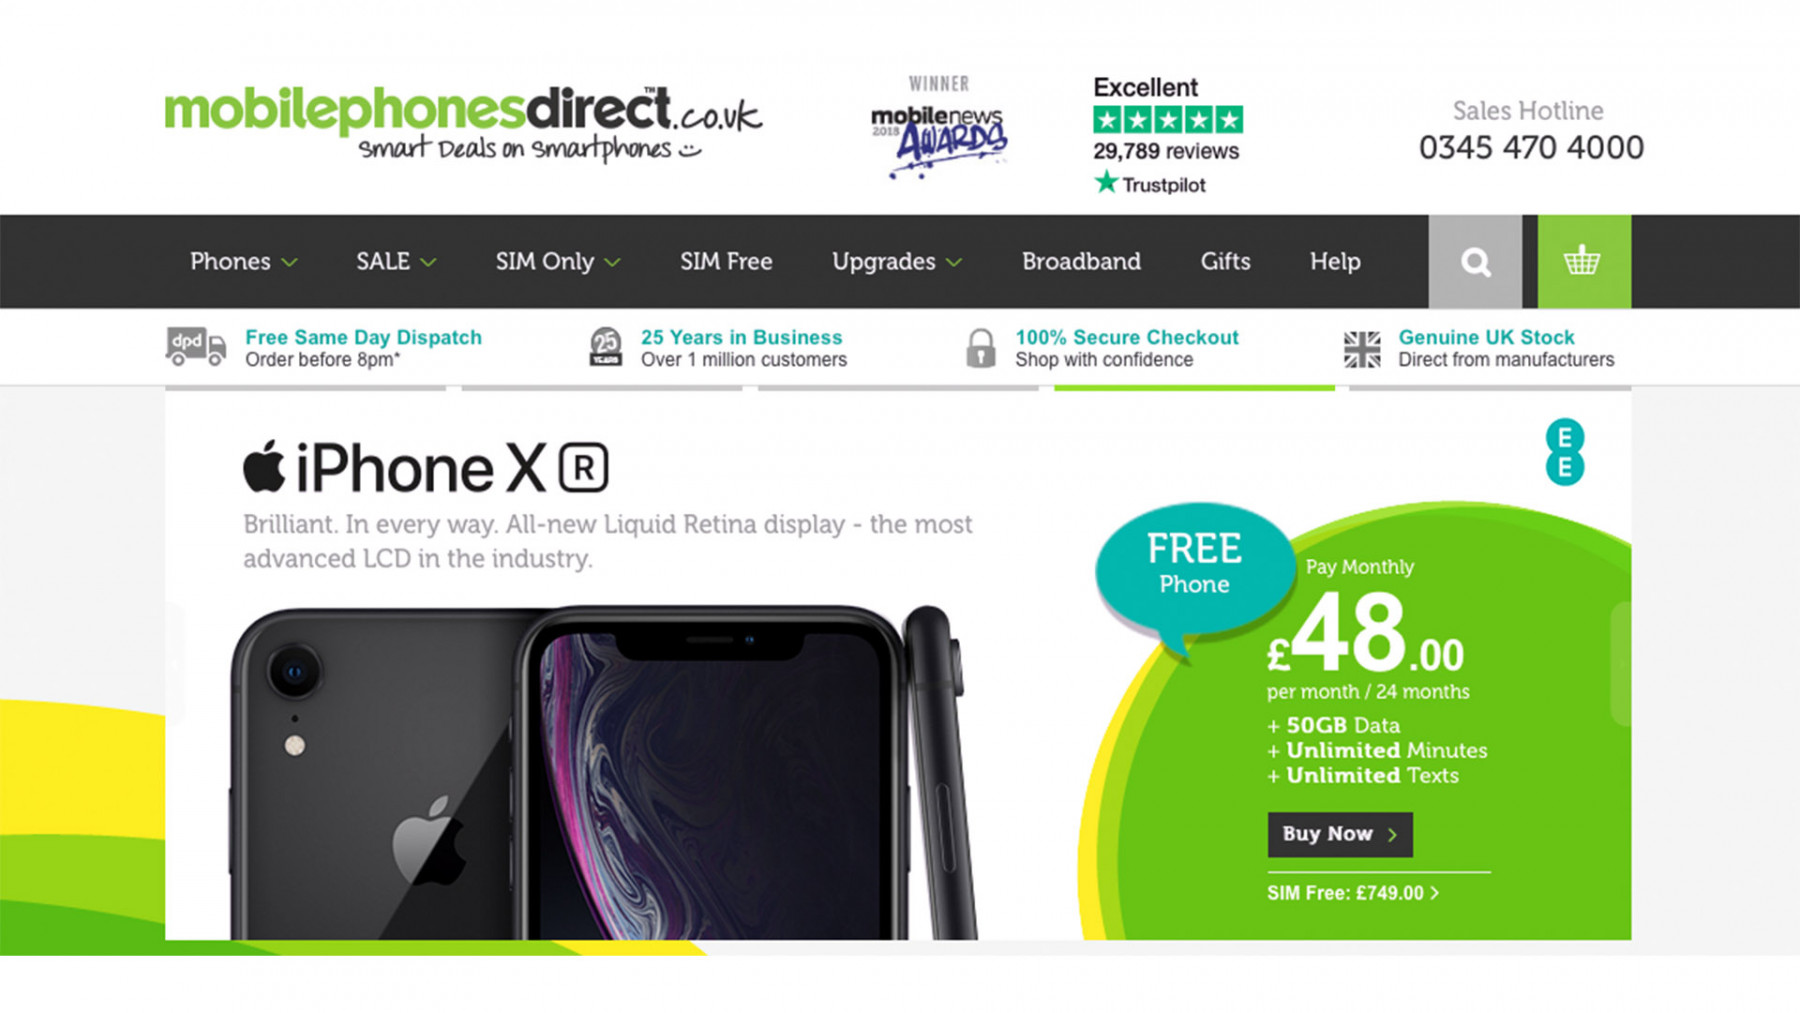 AO acquires Mobile Phones Direct for £32.5 million